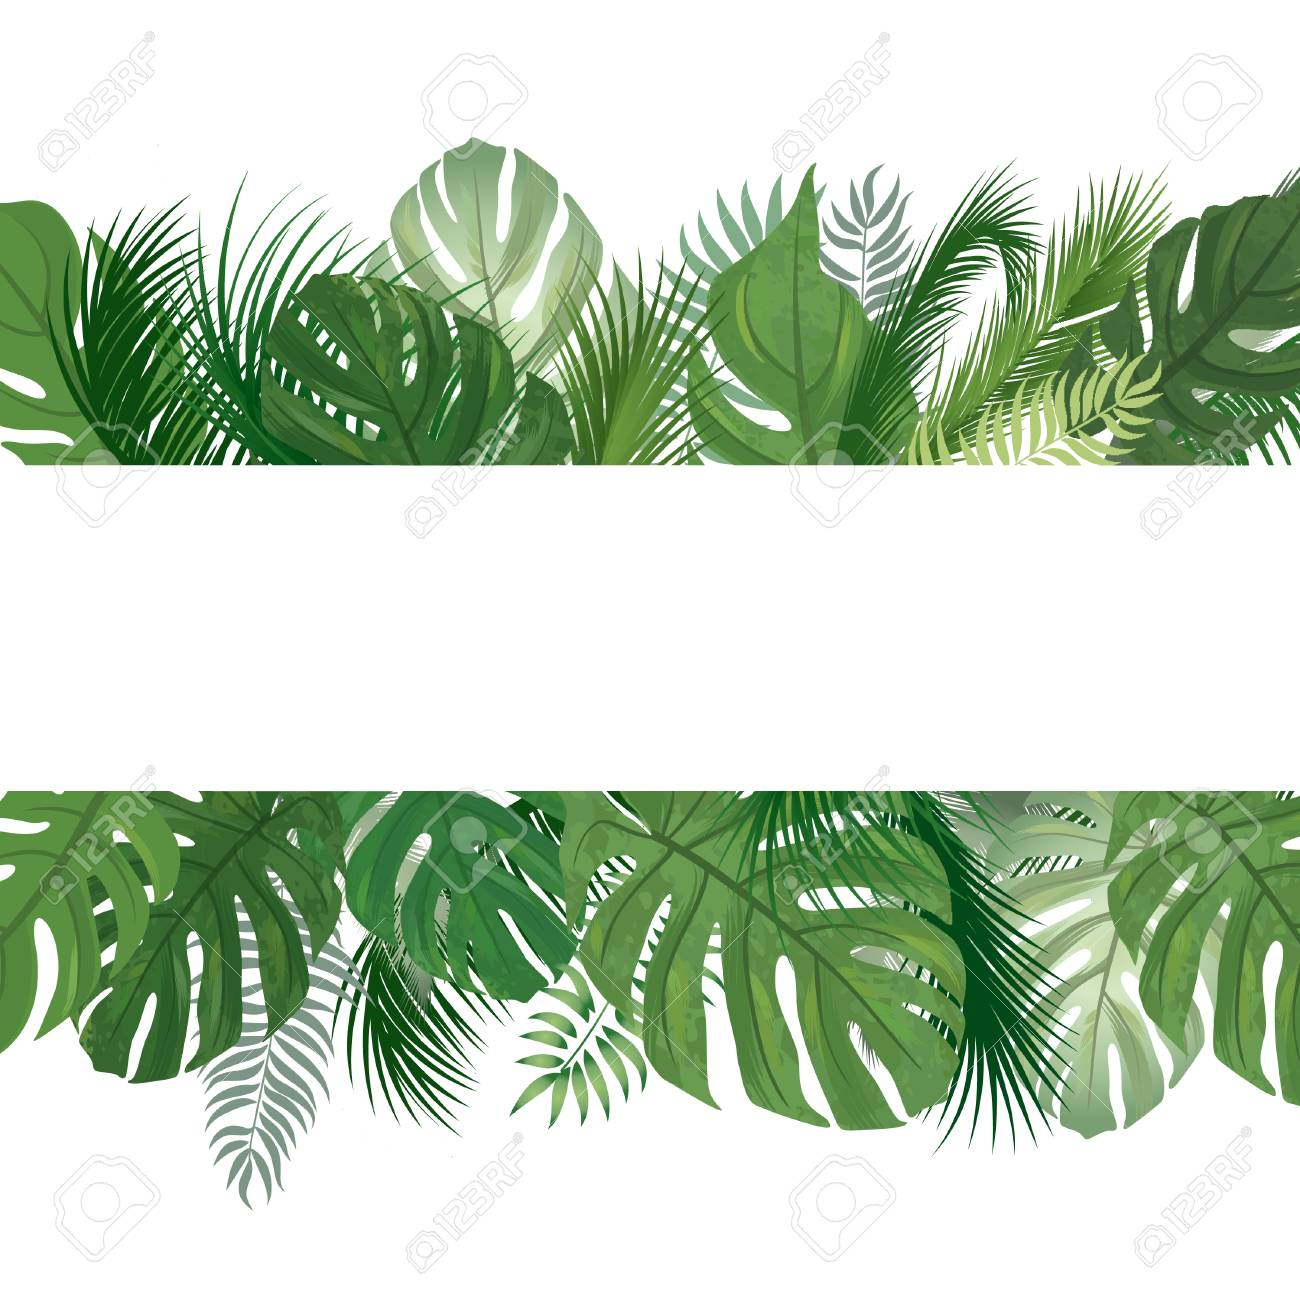 Floral Seamless Pattern Tropical Leaves Background Palm Tree Royalty Free Cliparts Vectors And Stock Illustration Image 82926332 Leaves of palm tree on white background. floral seamless pattern tropical leaves background palm tree royalty free cliparts vectors and stock illustration image 82926332